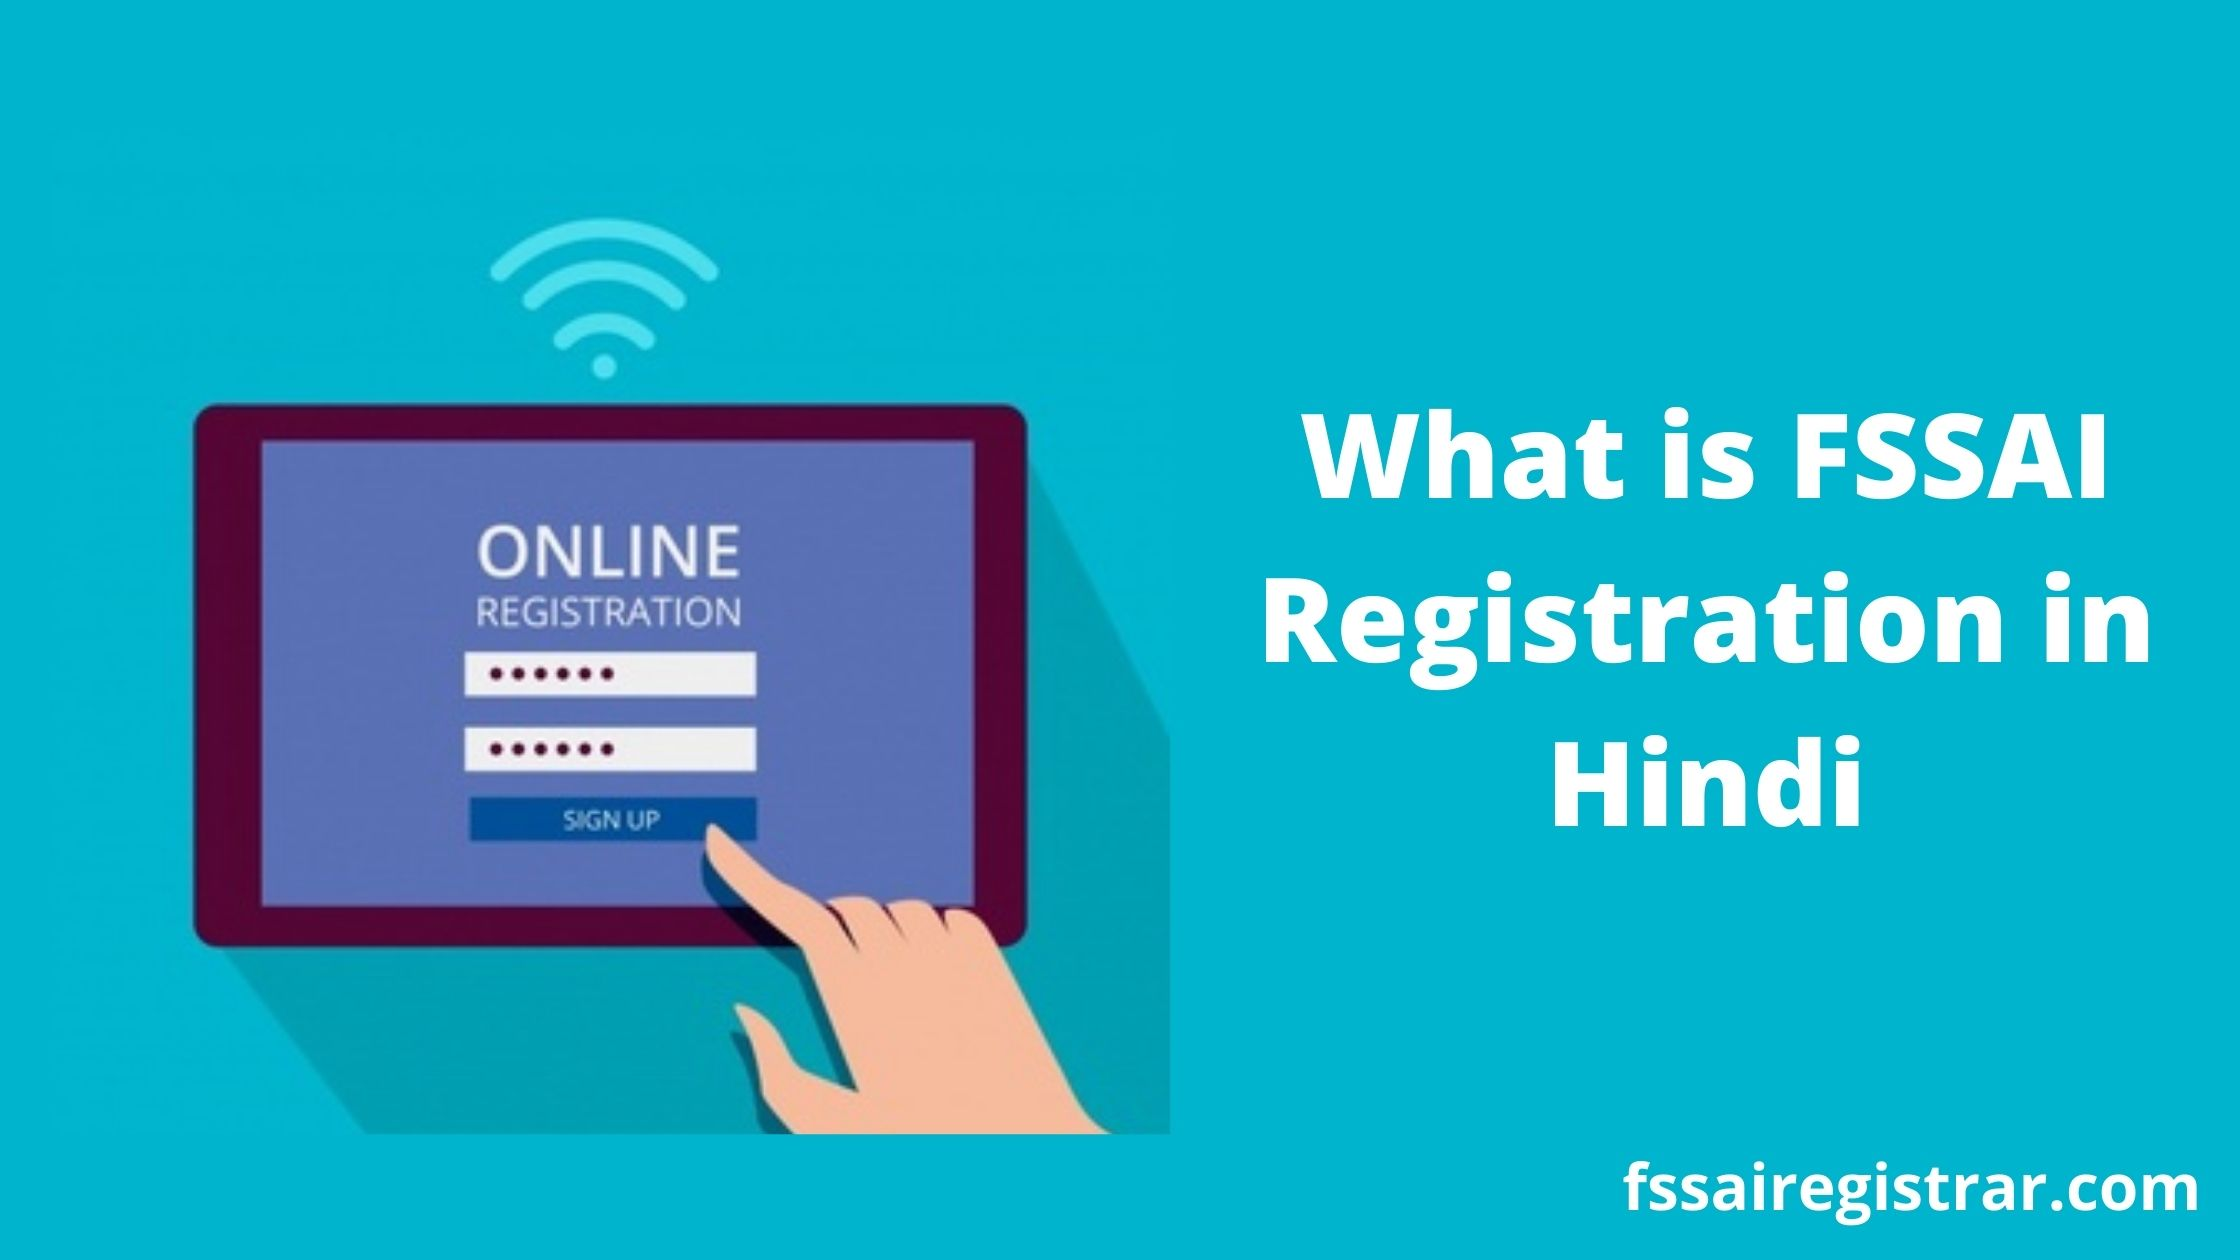 What is FSSAI Registration in Hindi, पंजीकरण प्रक्रिया